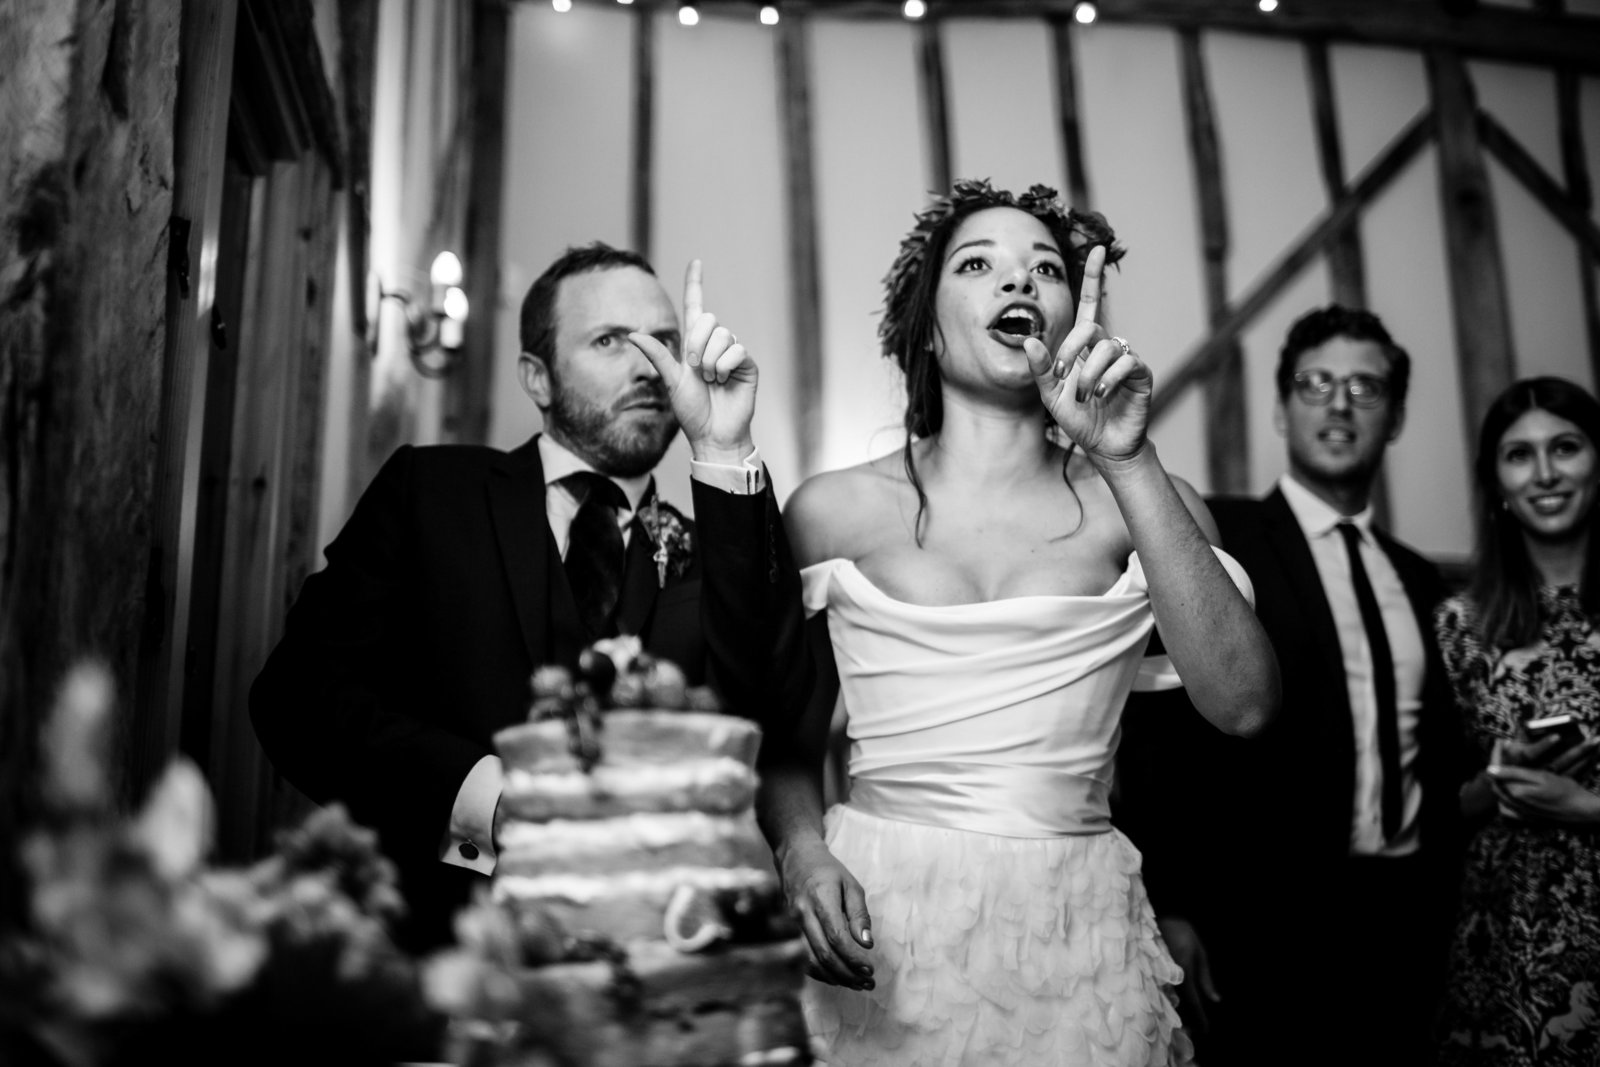 Bride and Groom cut their wedding cake whilst making the 'loser' sign at a guest and smiling in a Norfolk barn wedding venue.